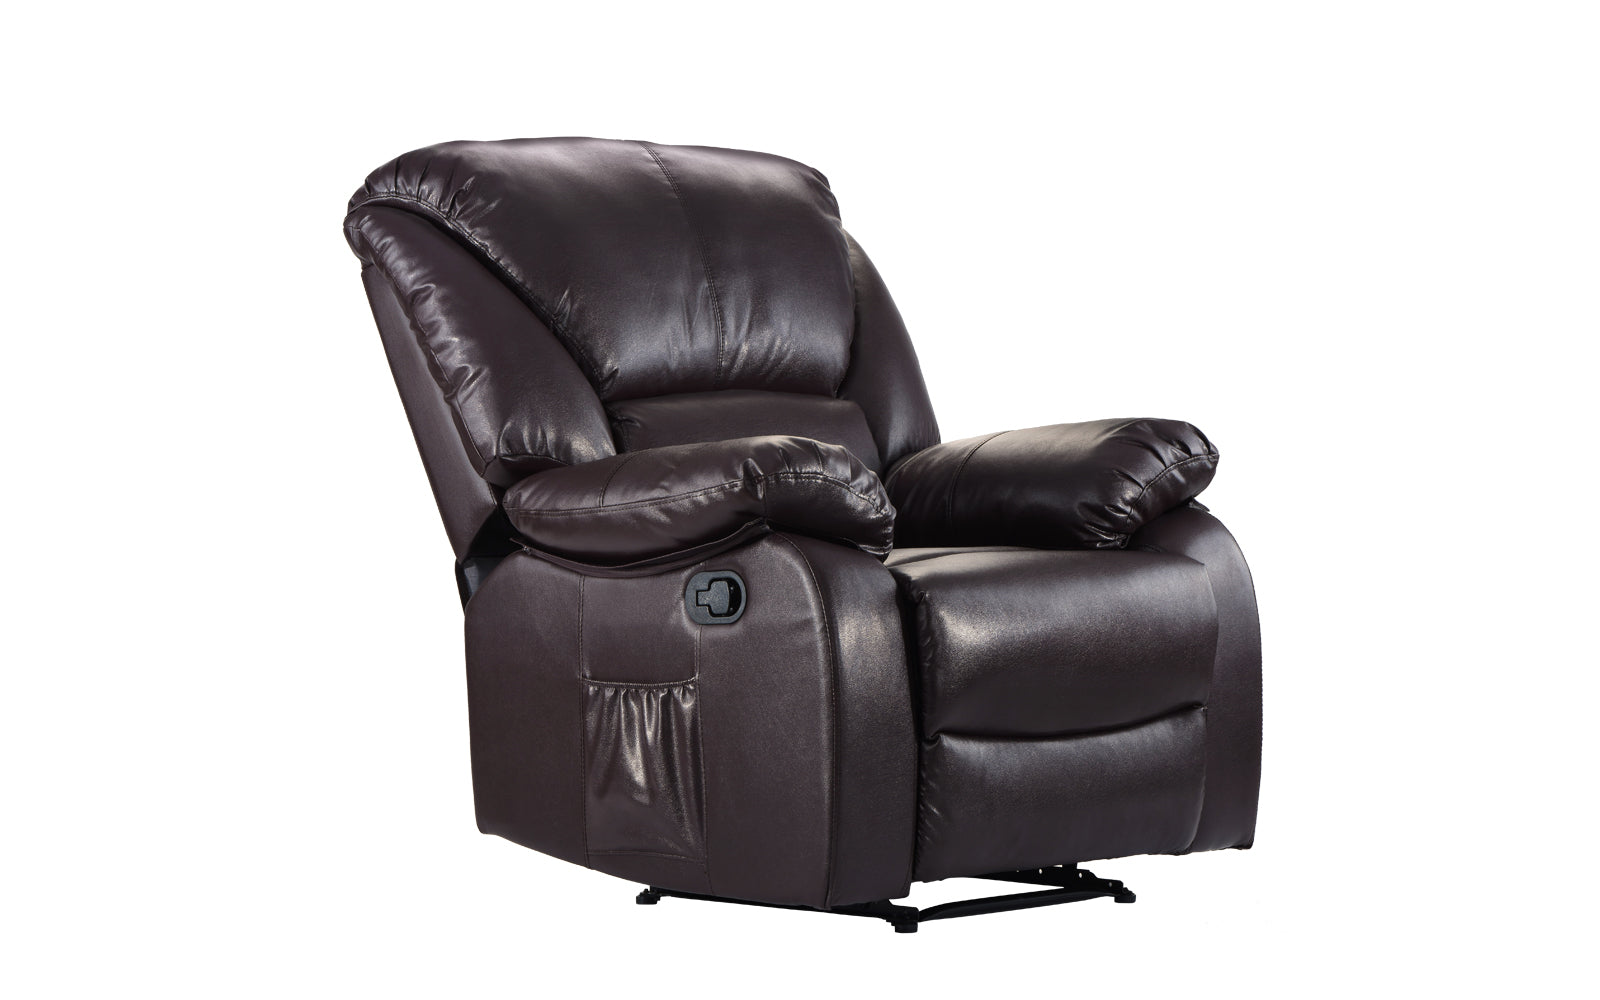 ... Bach Full Body Massage Recliner Chair Side Shot ...